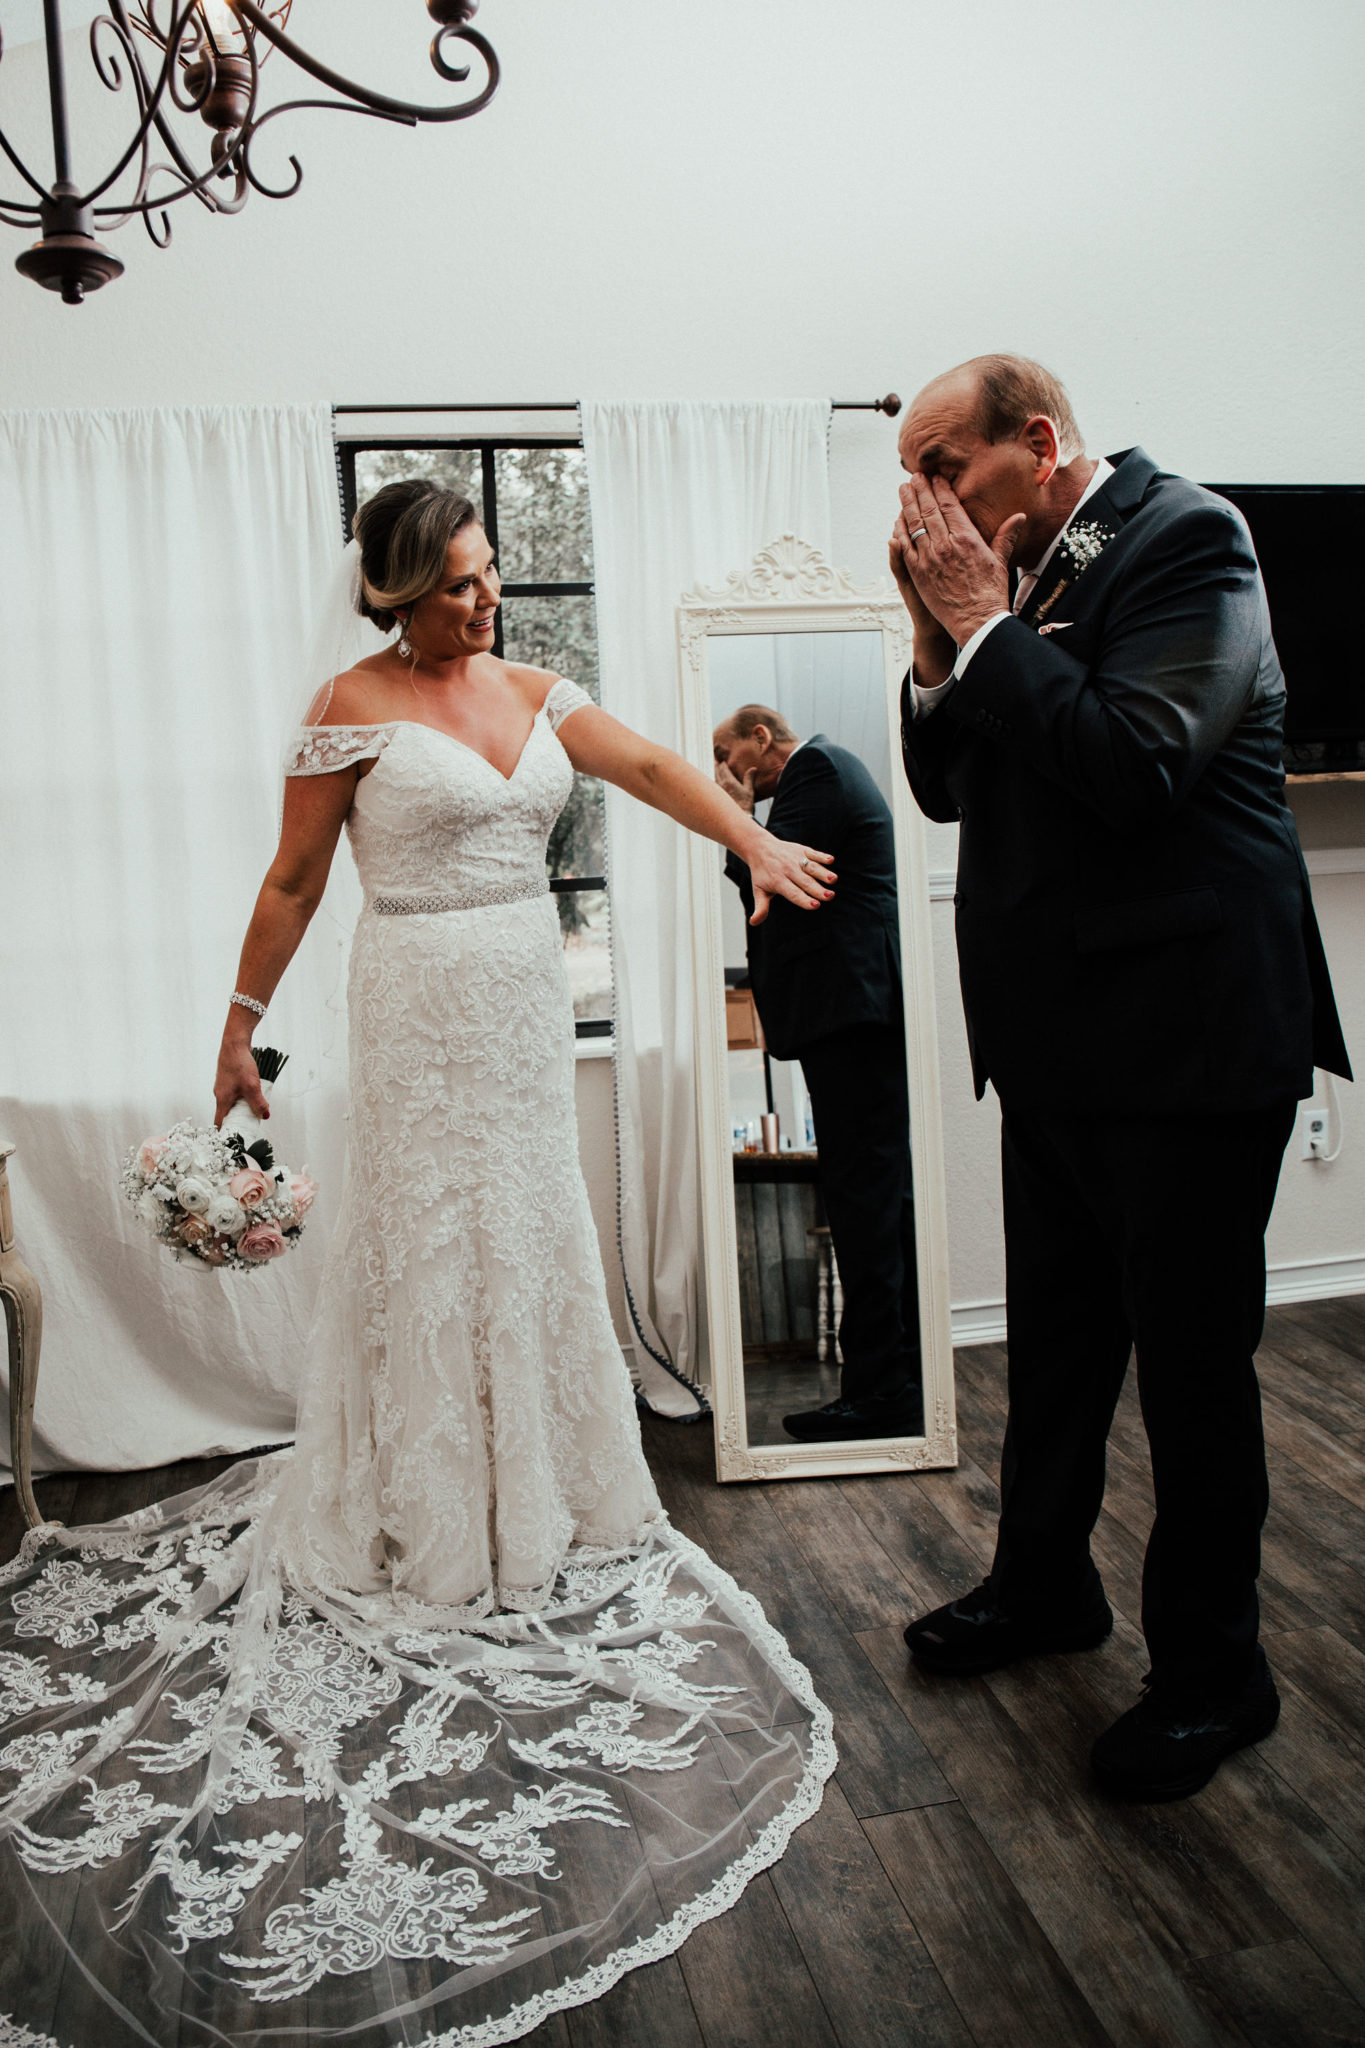 An emotional first look with the father of the bride.